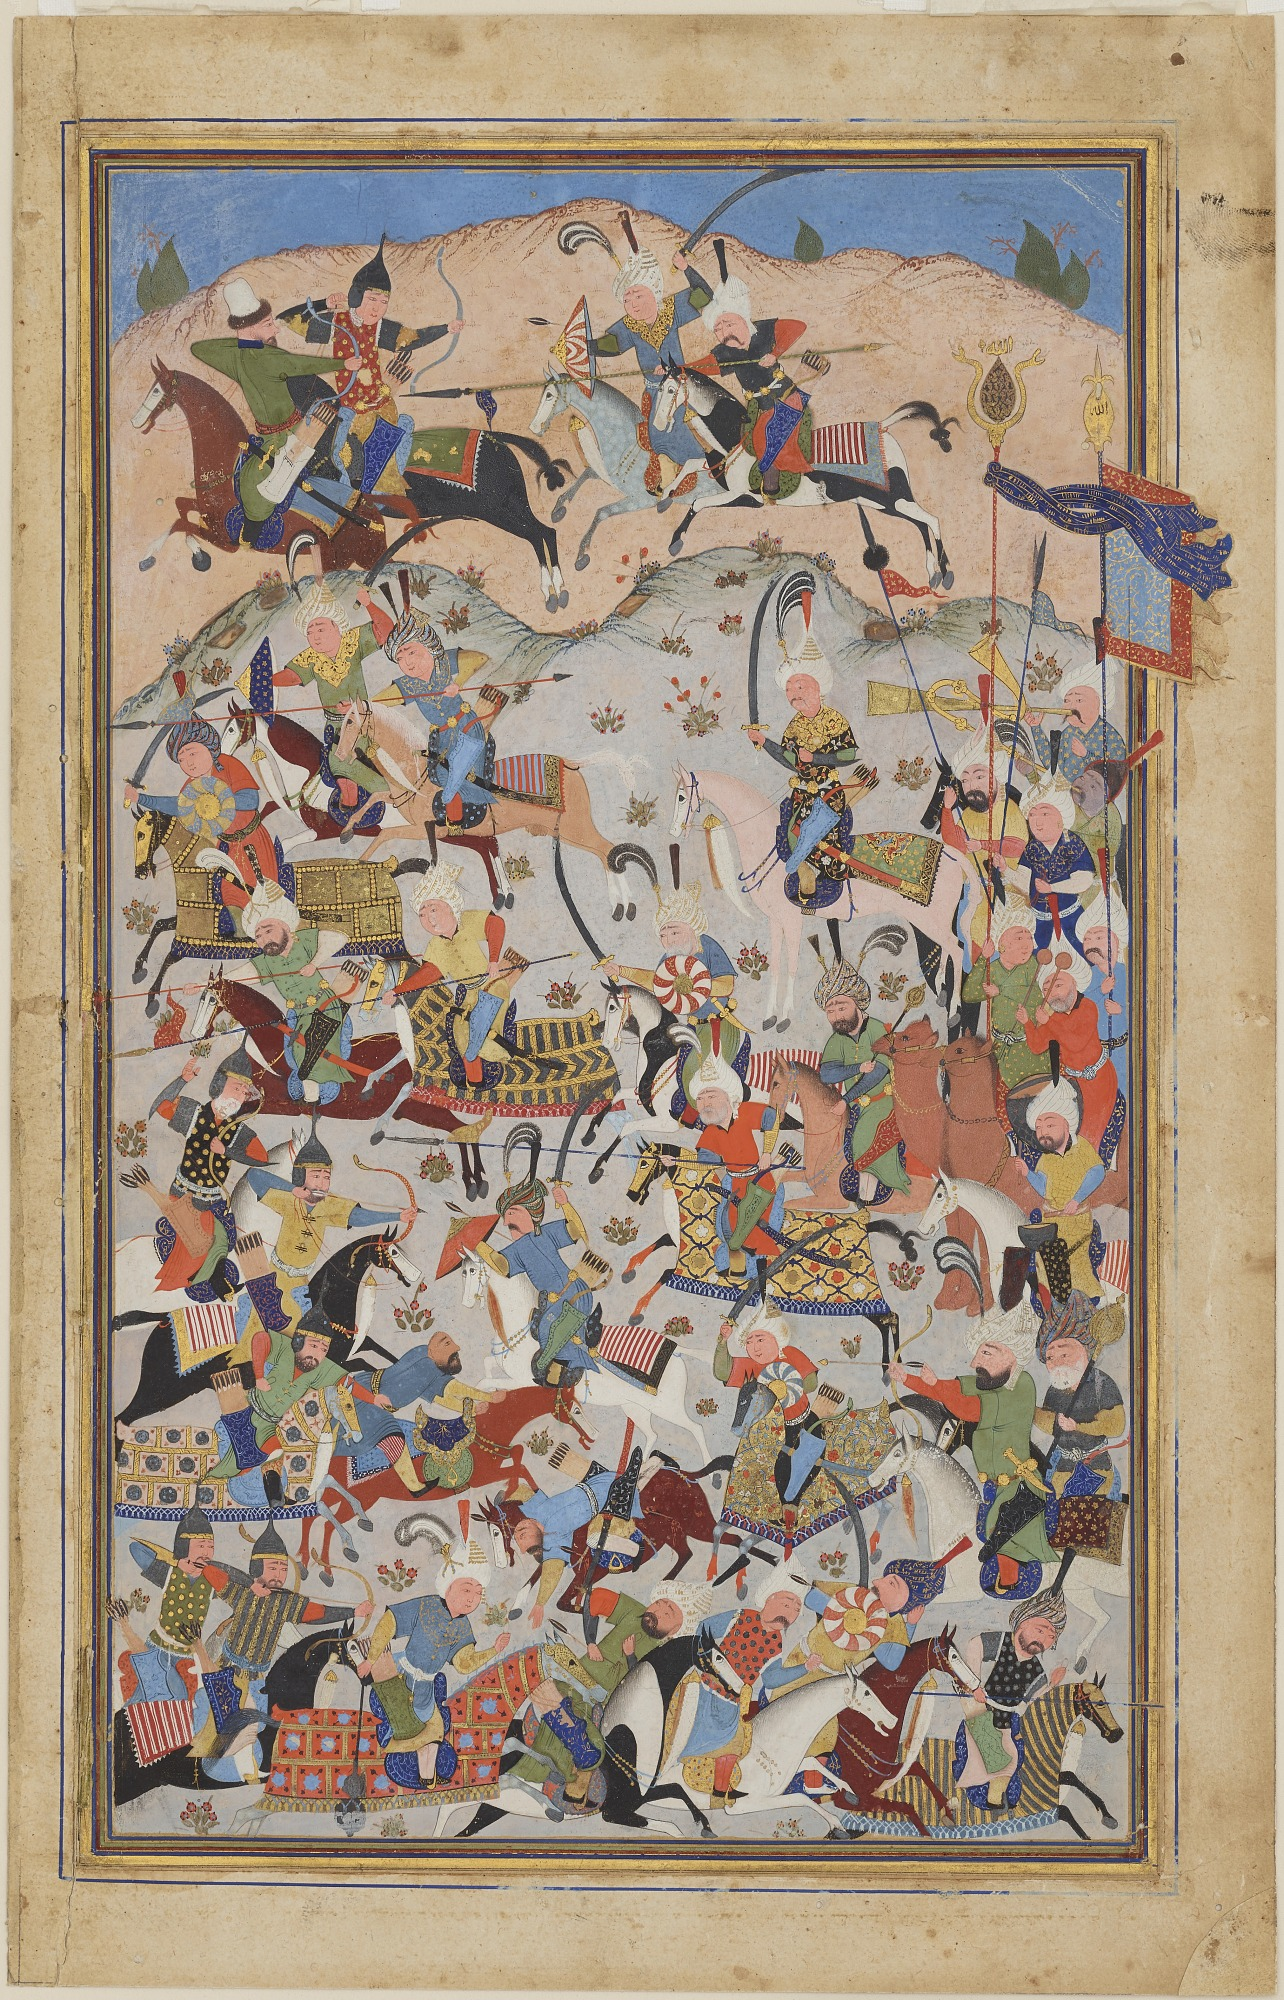 : Folio from a Shahnama [?] (Book of kings) by Firdawsi (d.1020); Battle scene